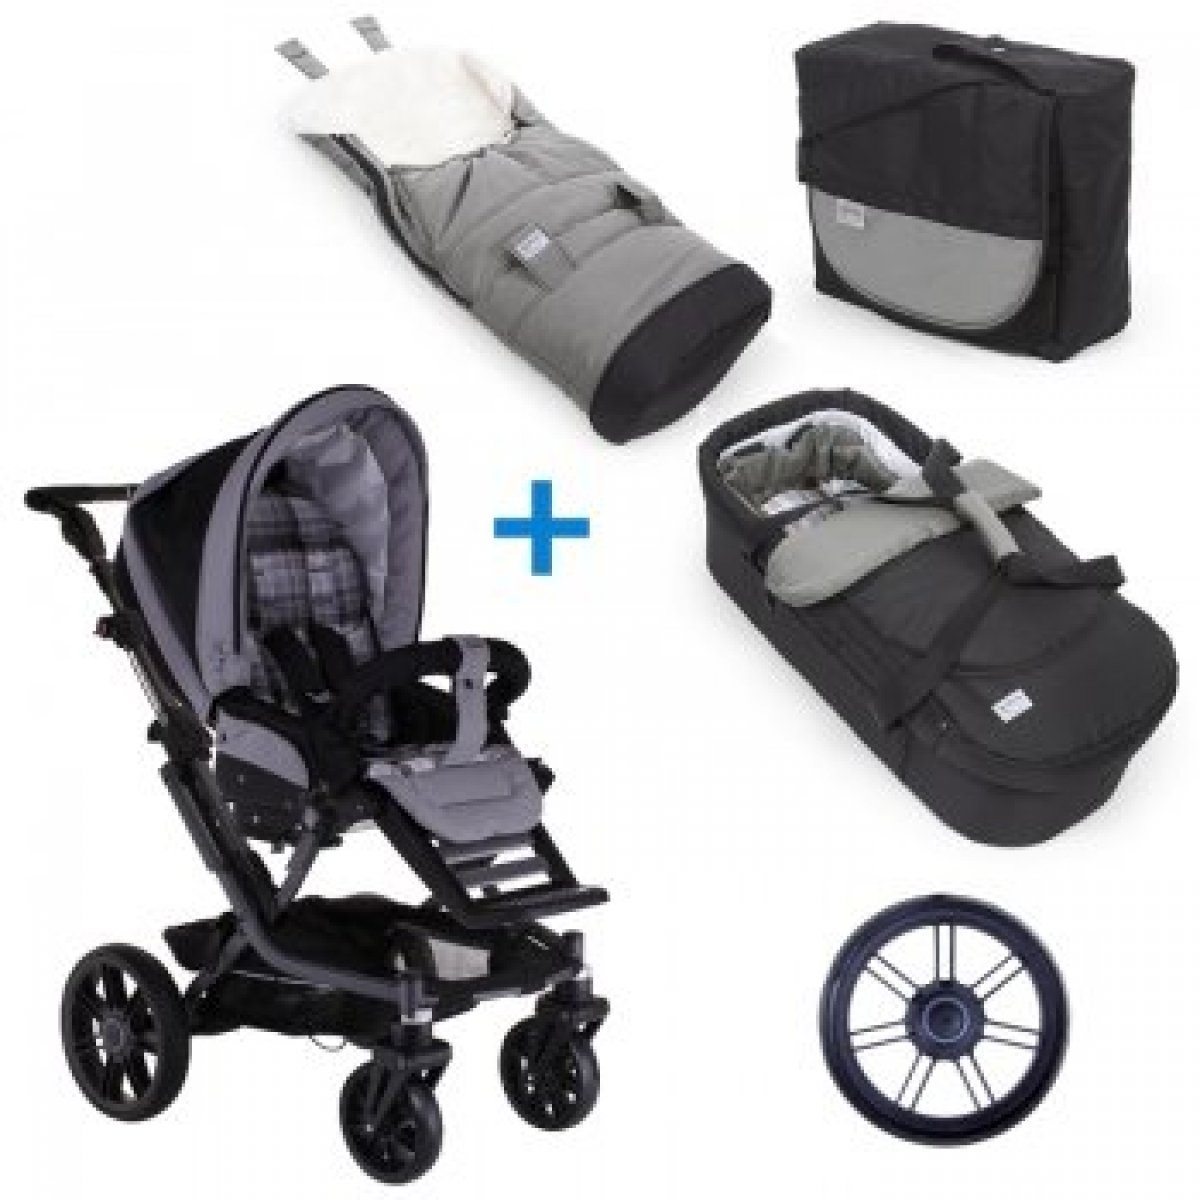 teutonia mistral s kinderwagen mit varioplus tt wickeltasche 2014 farbe w hlbar ebay. Black Bedroom Furniture Sets. Home Design Ideas